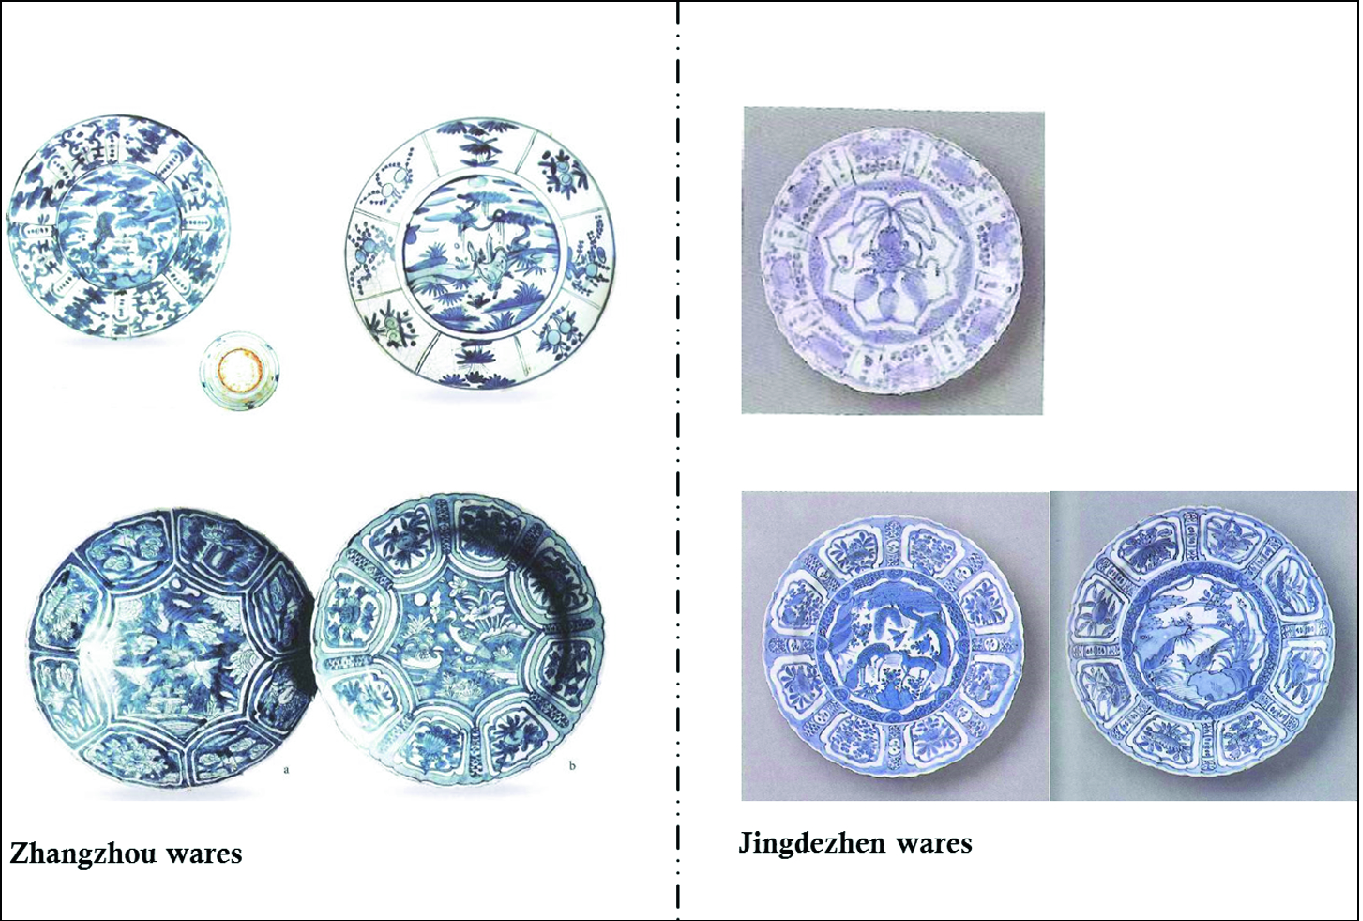 Chinese Porcelain in the Manila Galleon Trade  SpringerLink